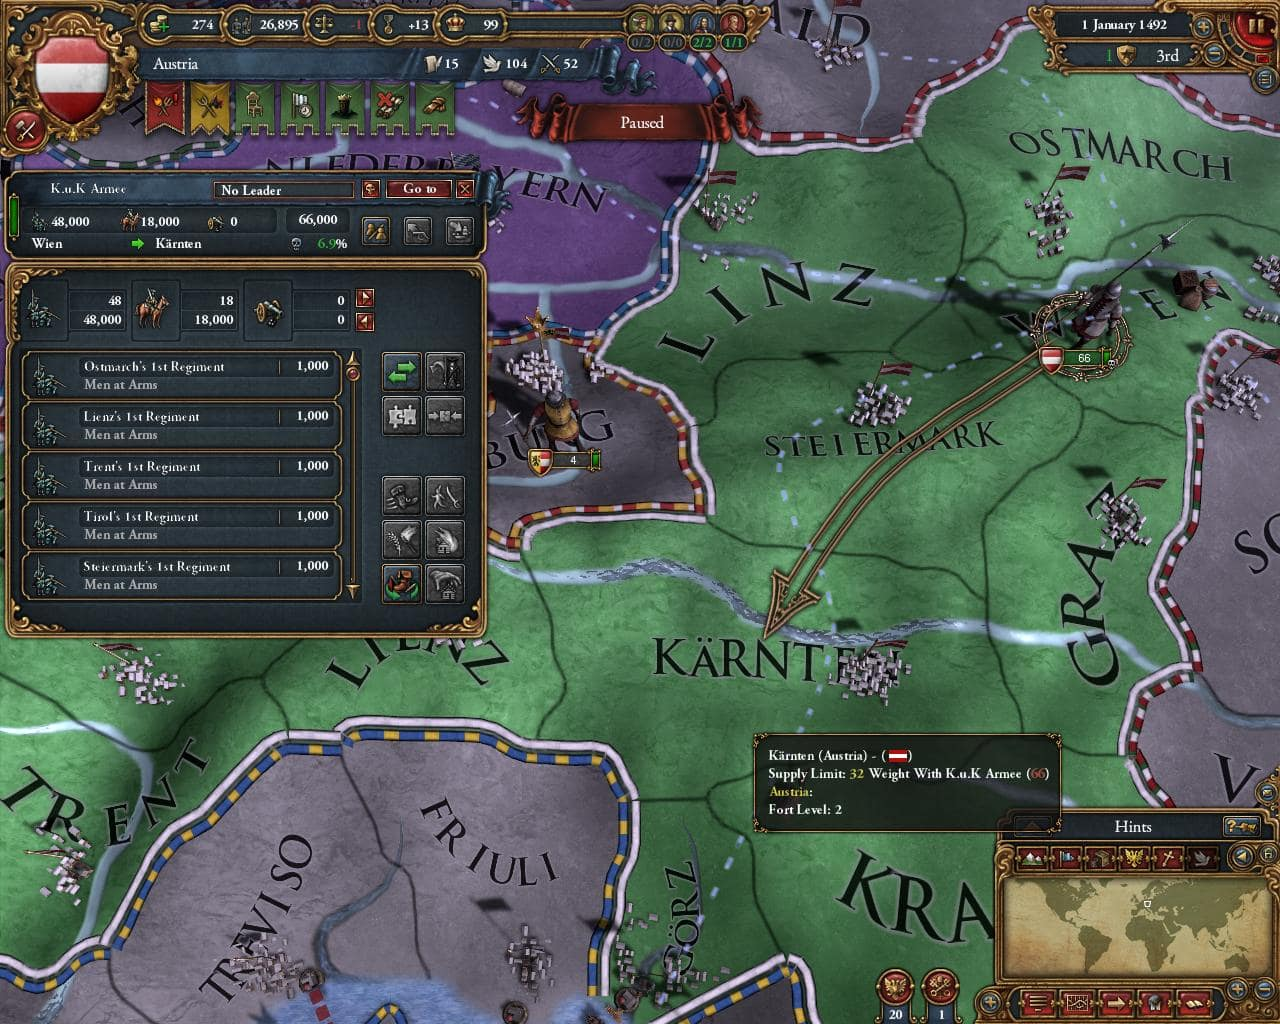 Games From Paradox Interactive After Europa Universalis Iii And Crusader Kings Ii The Saga Offers Us Its Latest Opus Establishing The Realm Of